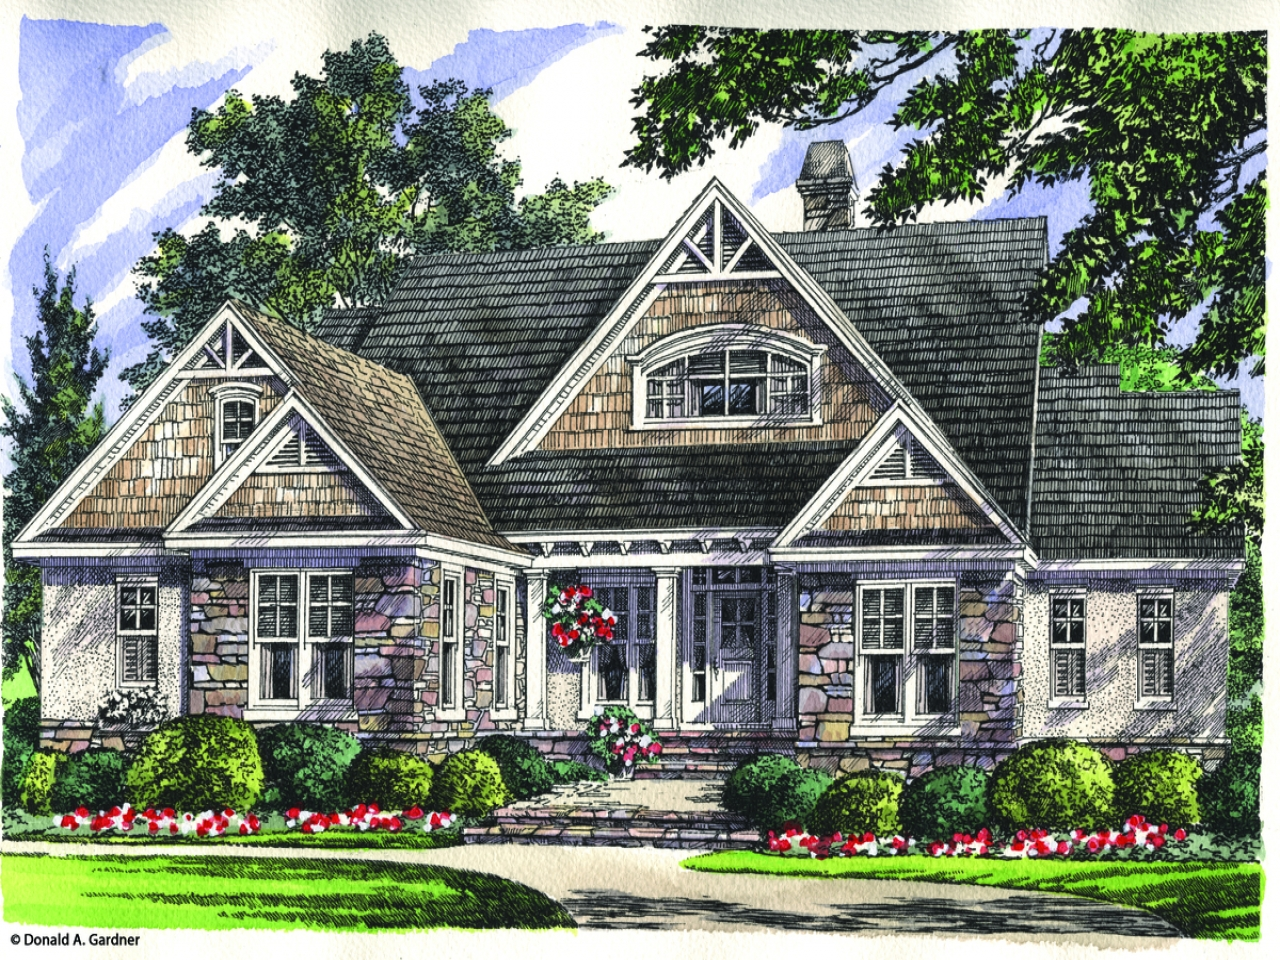 one story house plans with basement don gardner house plans one story don gardner house plans with walkout basement donald a 6082